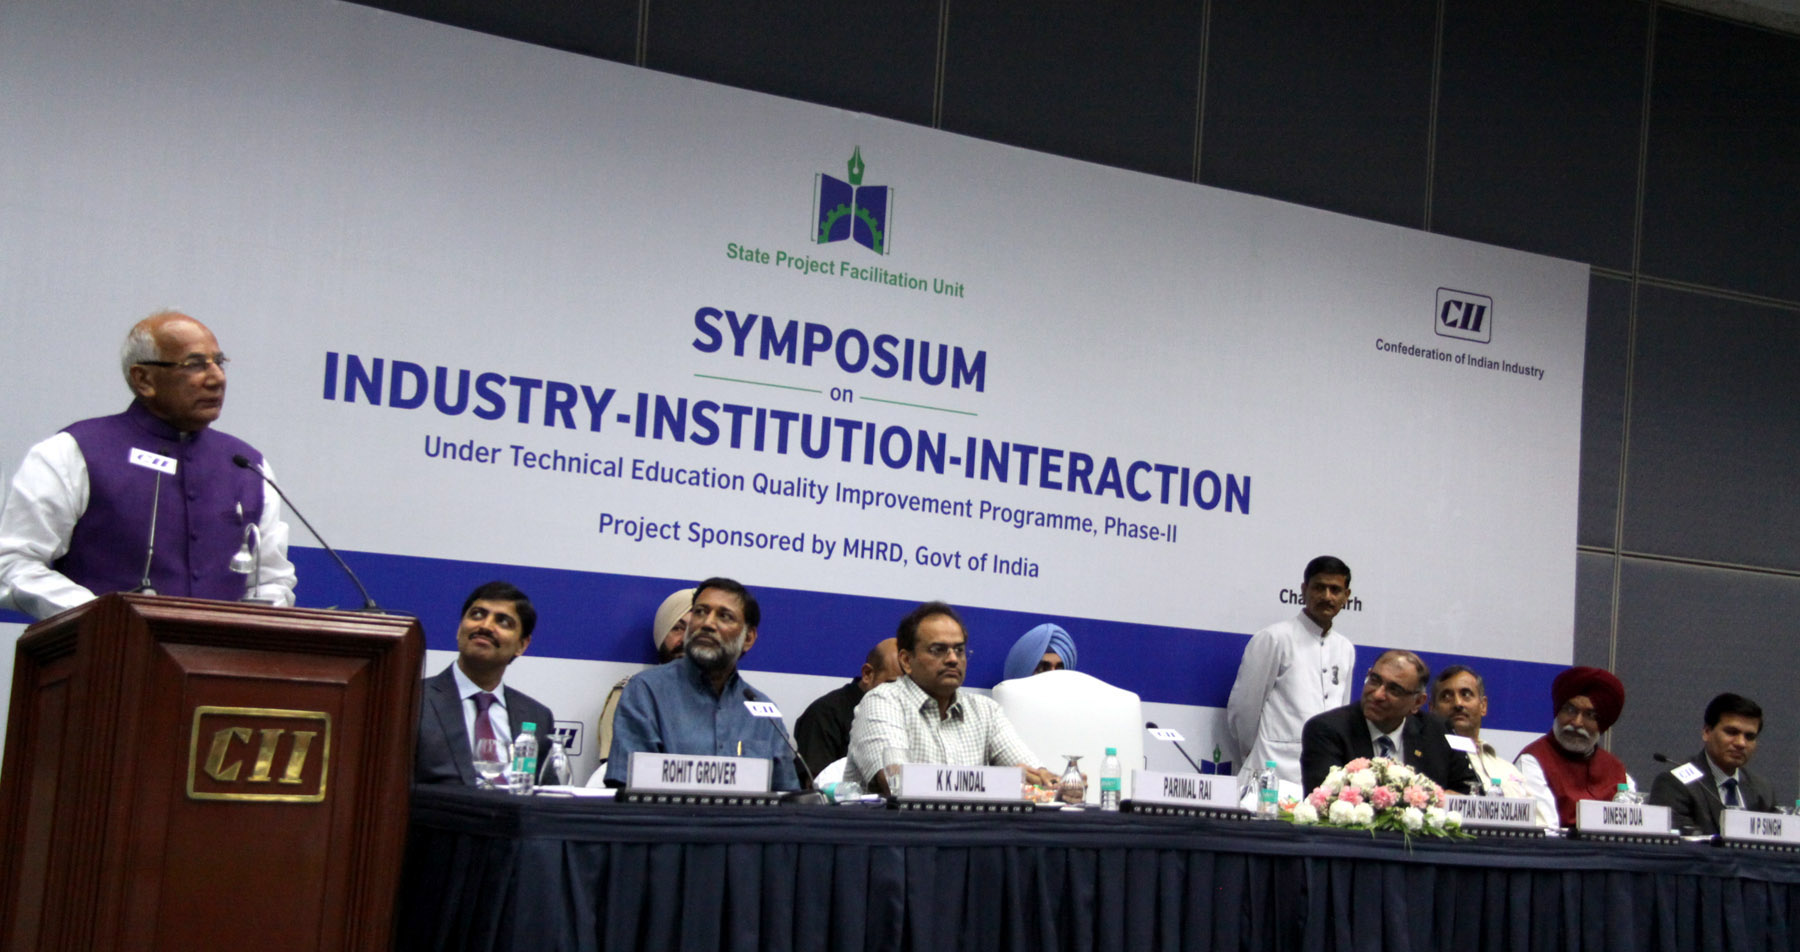 The Governor of Haryana, Punjab and Administrator, UT, Chandigarh, Prof. Kaptan Singh Solanki speaking in the �National Level Symposium on Industry Institution  Interaction-2016�  at CII, Sector-31, Chandigarh on Wednesday, May 25, 2016.